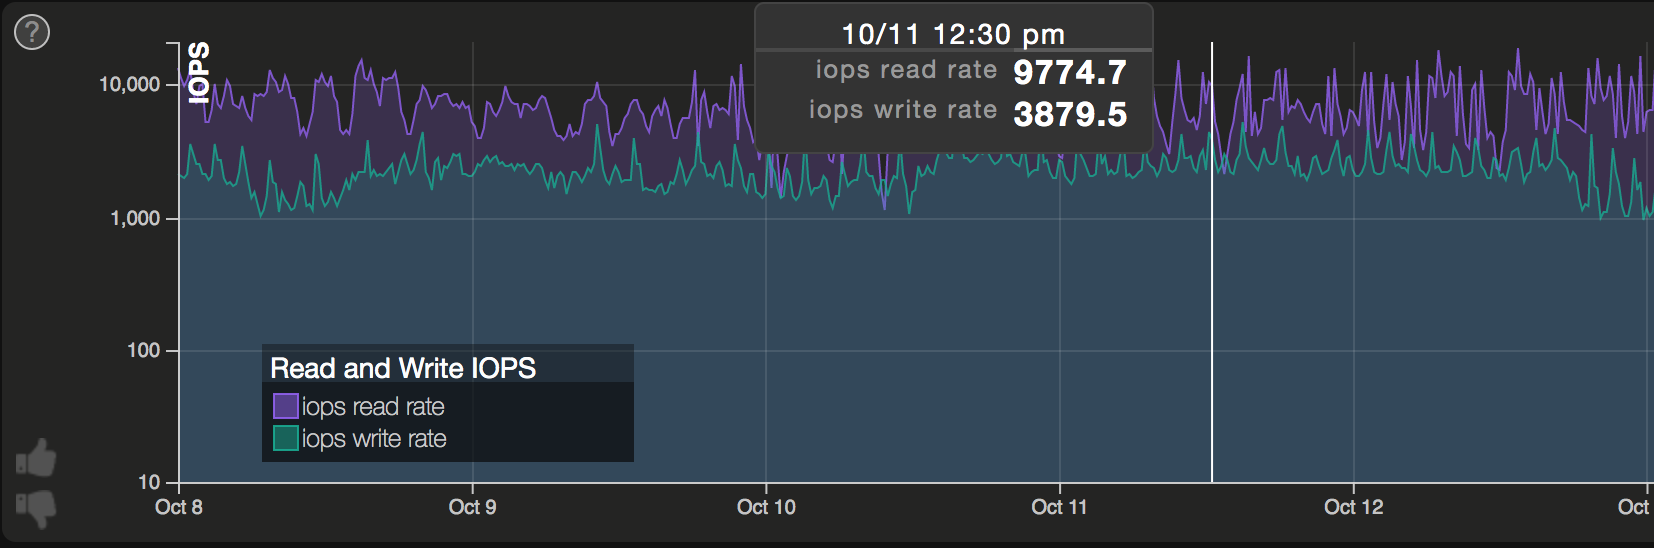 trends_read_write_iops.png